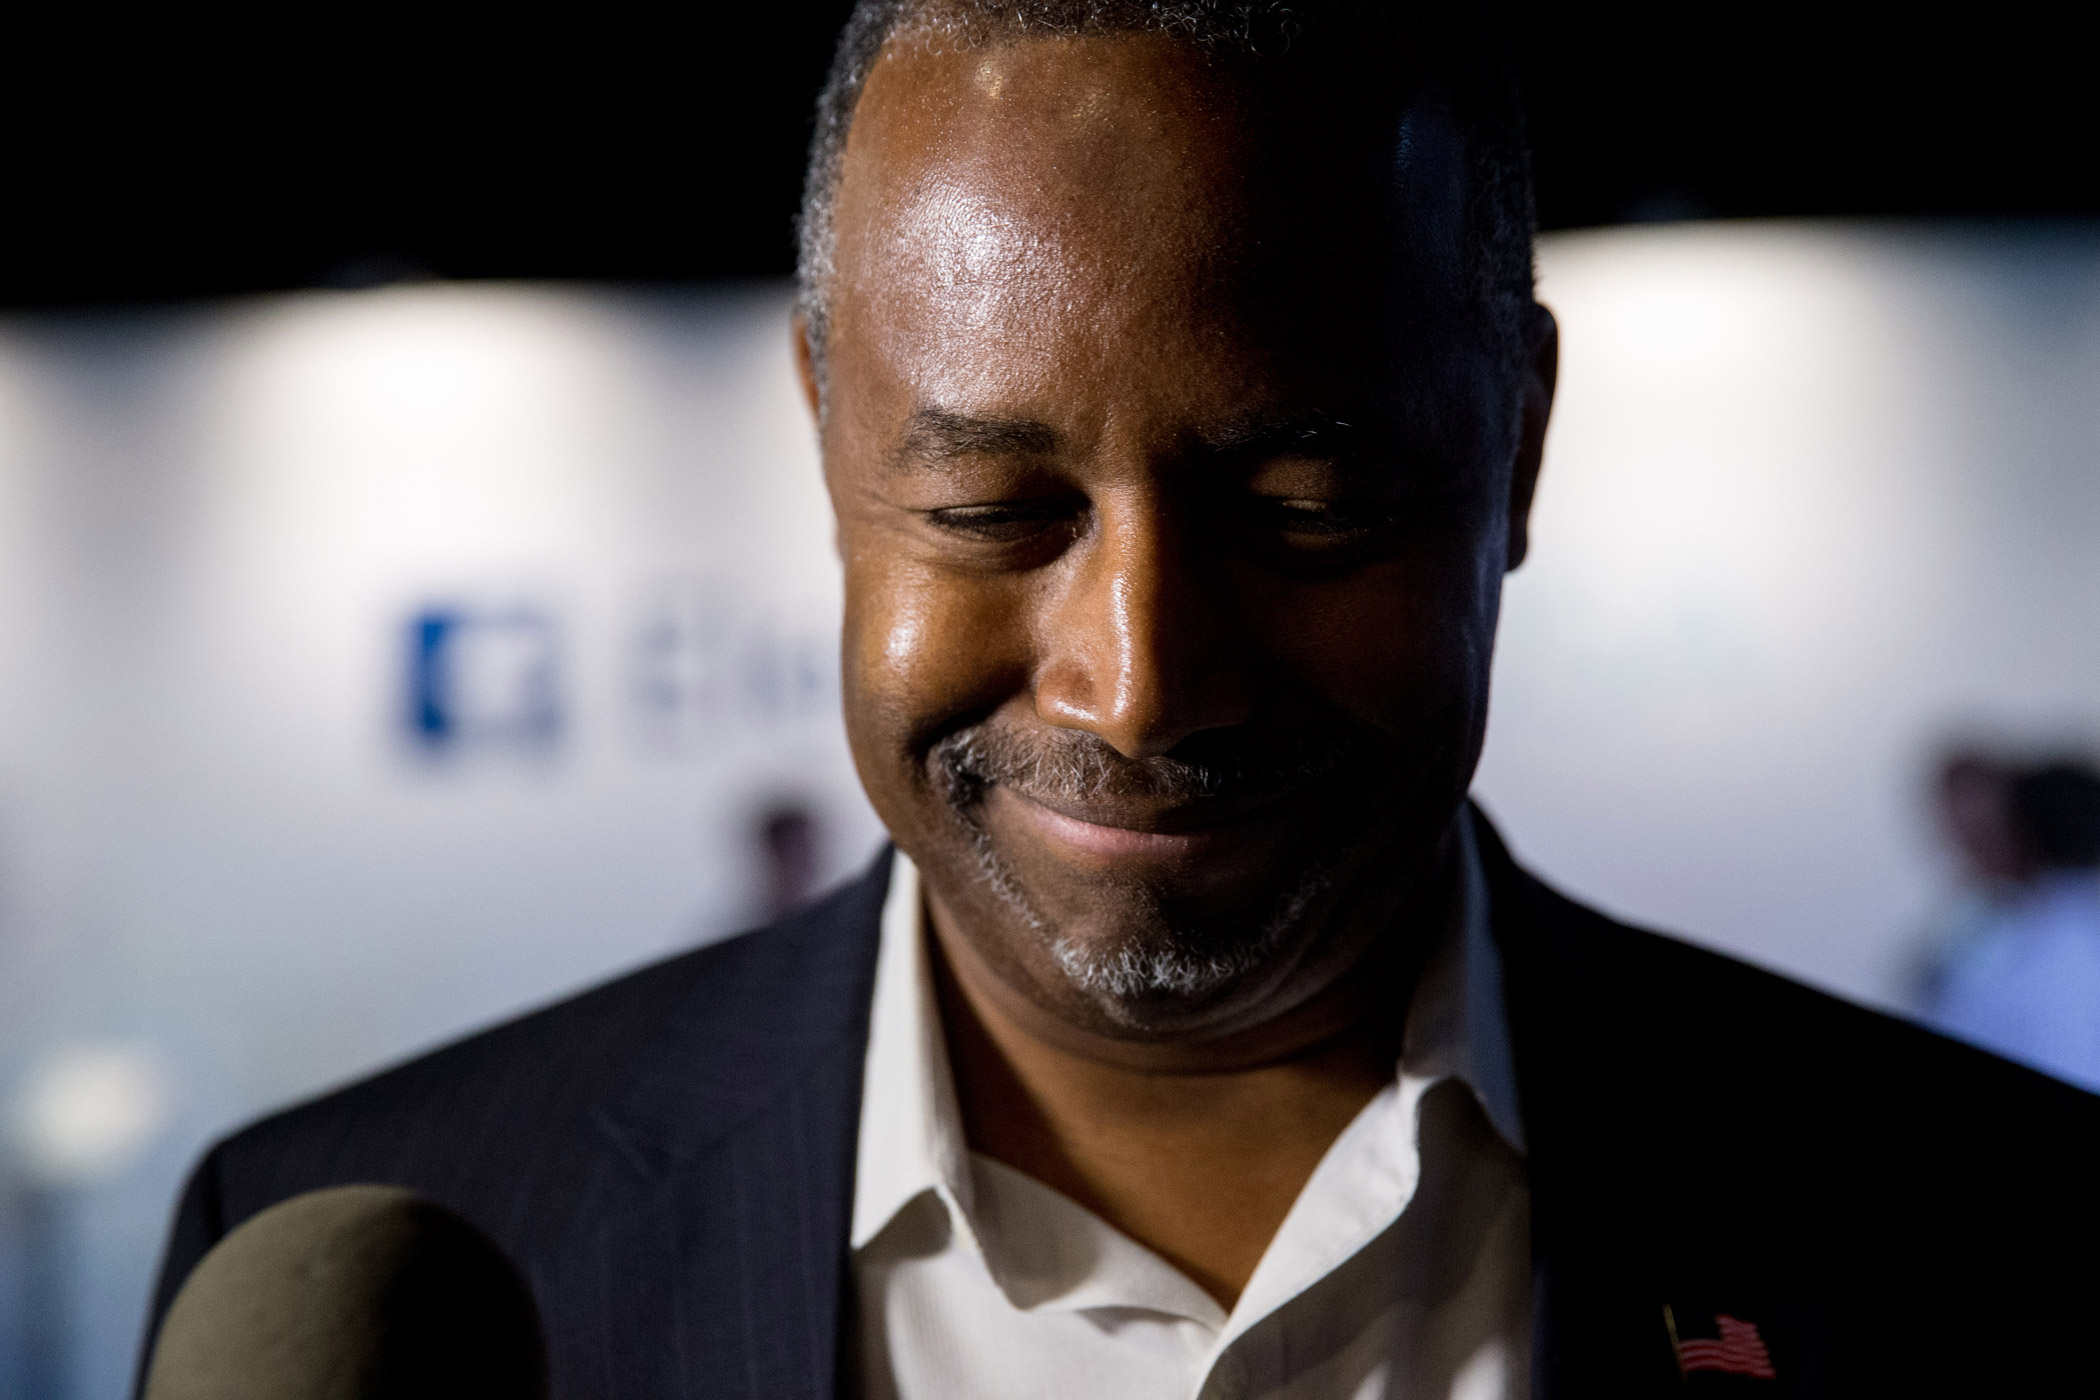 Republican presidential candidate and retired neurosurgeon Ben Carson speaks to reporters in Cleveland, Ohio on Thursday, Aug. 6, 2015, before the first Republican presidential debate.